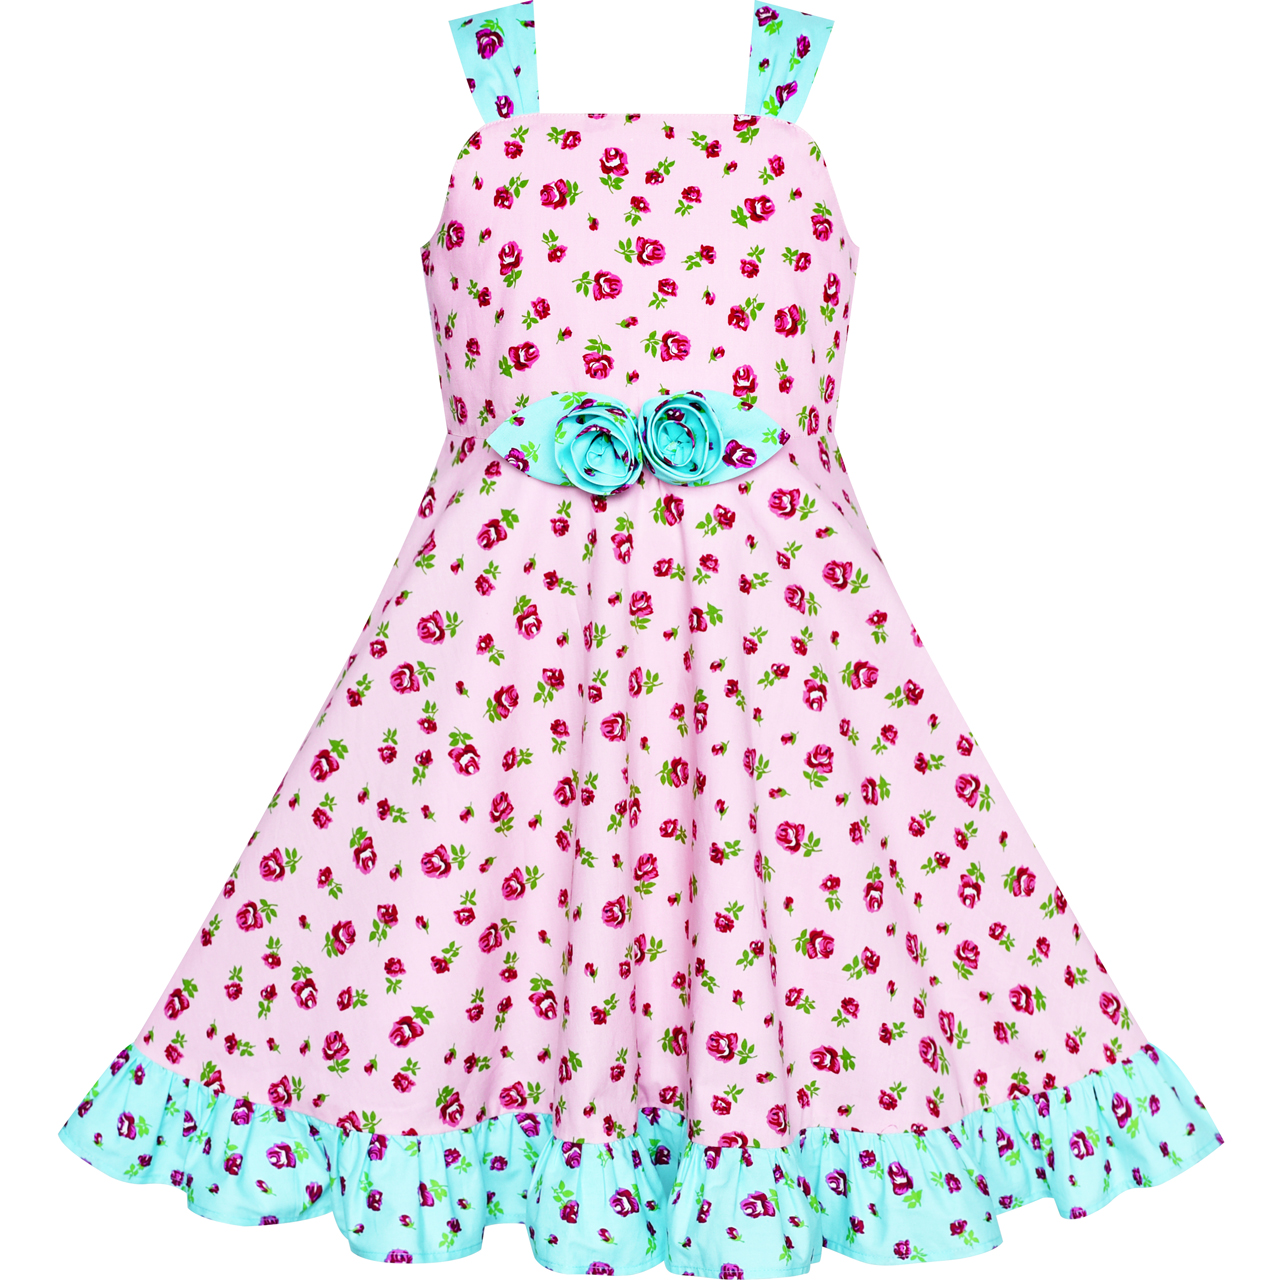 Princess Baby Kids Girl Dress Party Polka Dot Casual Dresses Summer Sundress